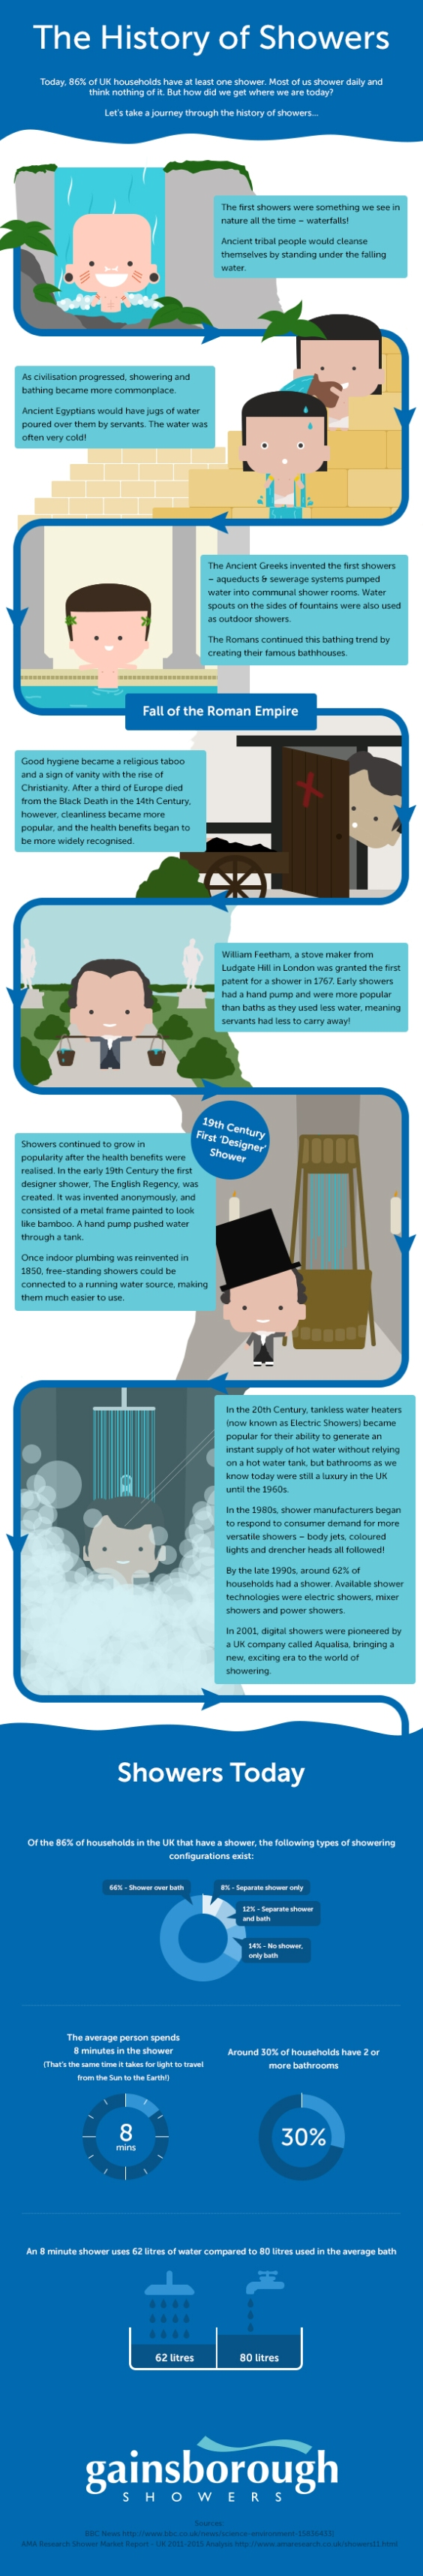 The History of Showers